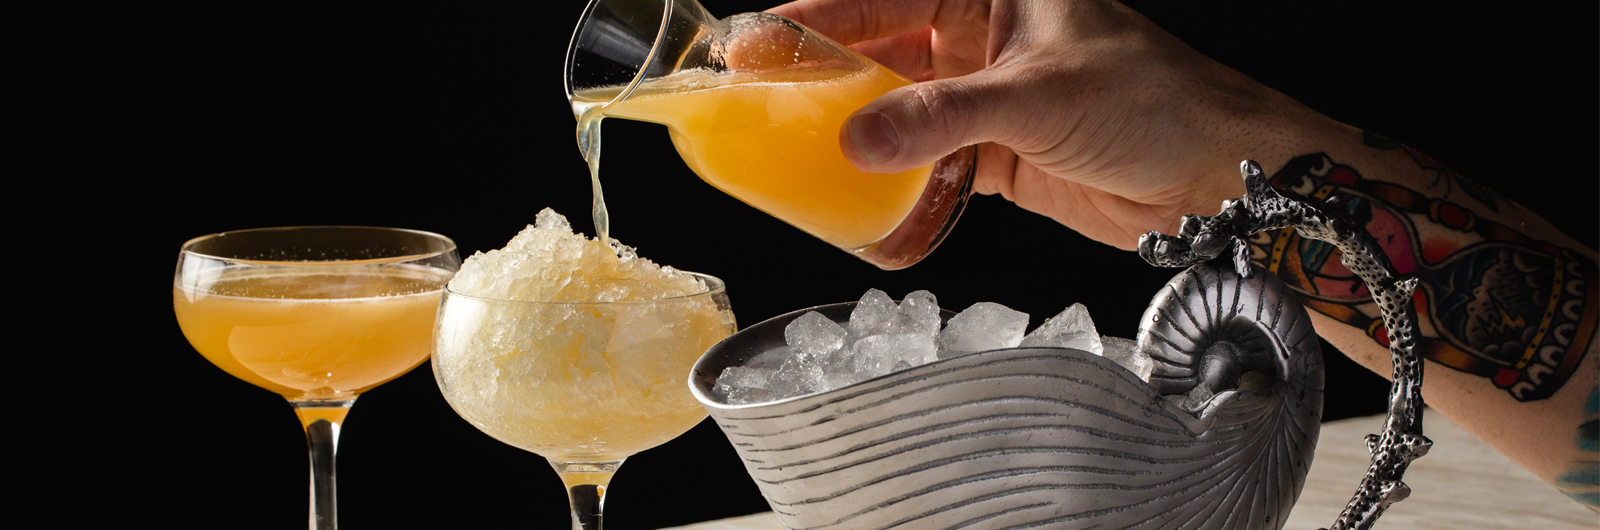 How to Make a Perfect Daiquiri, According to Rum Expert